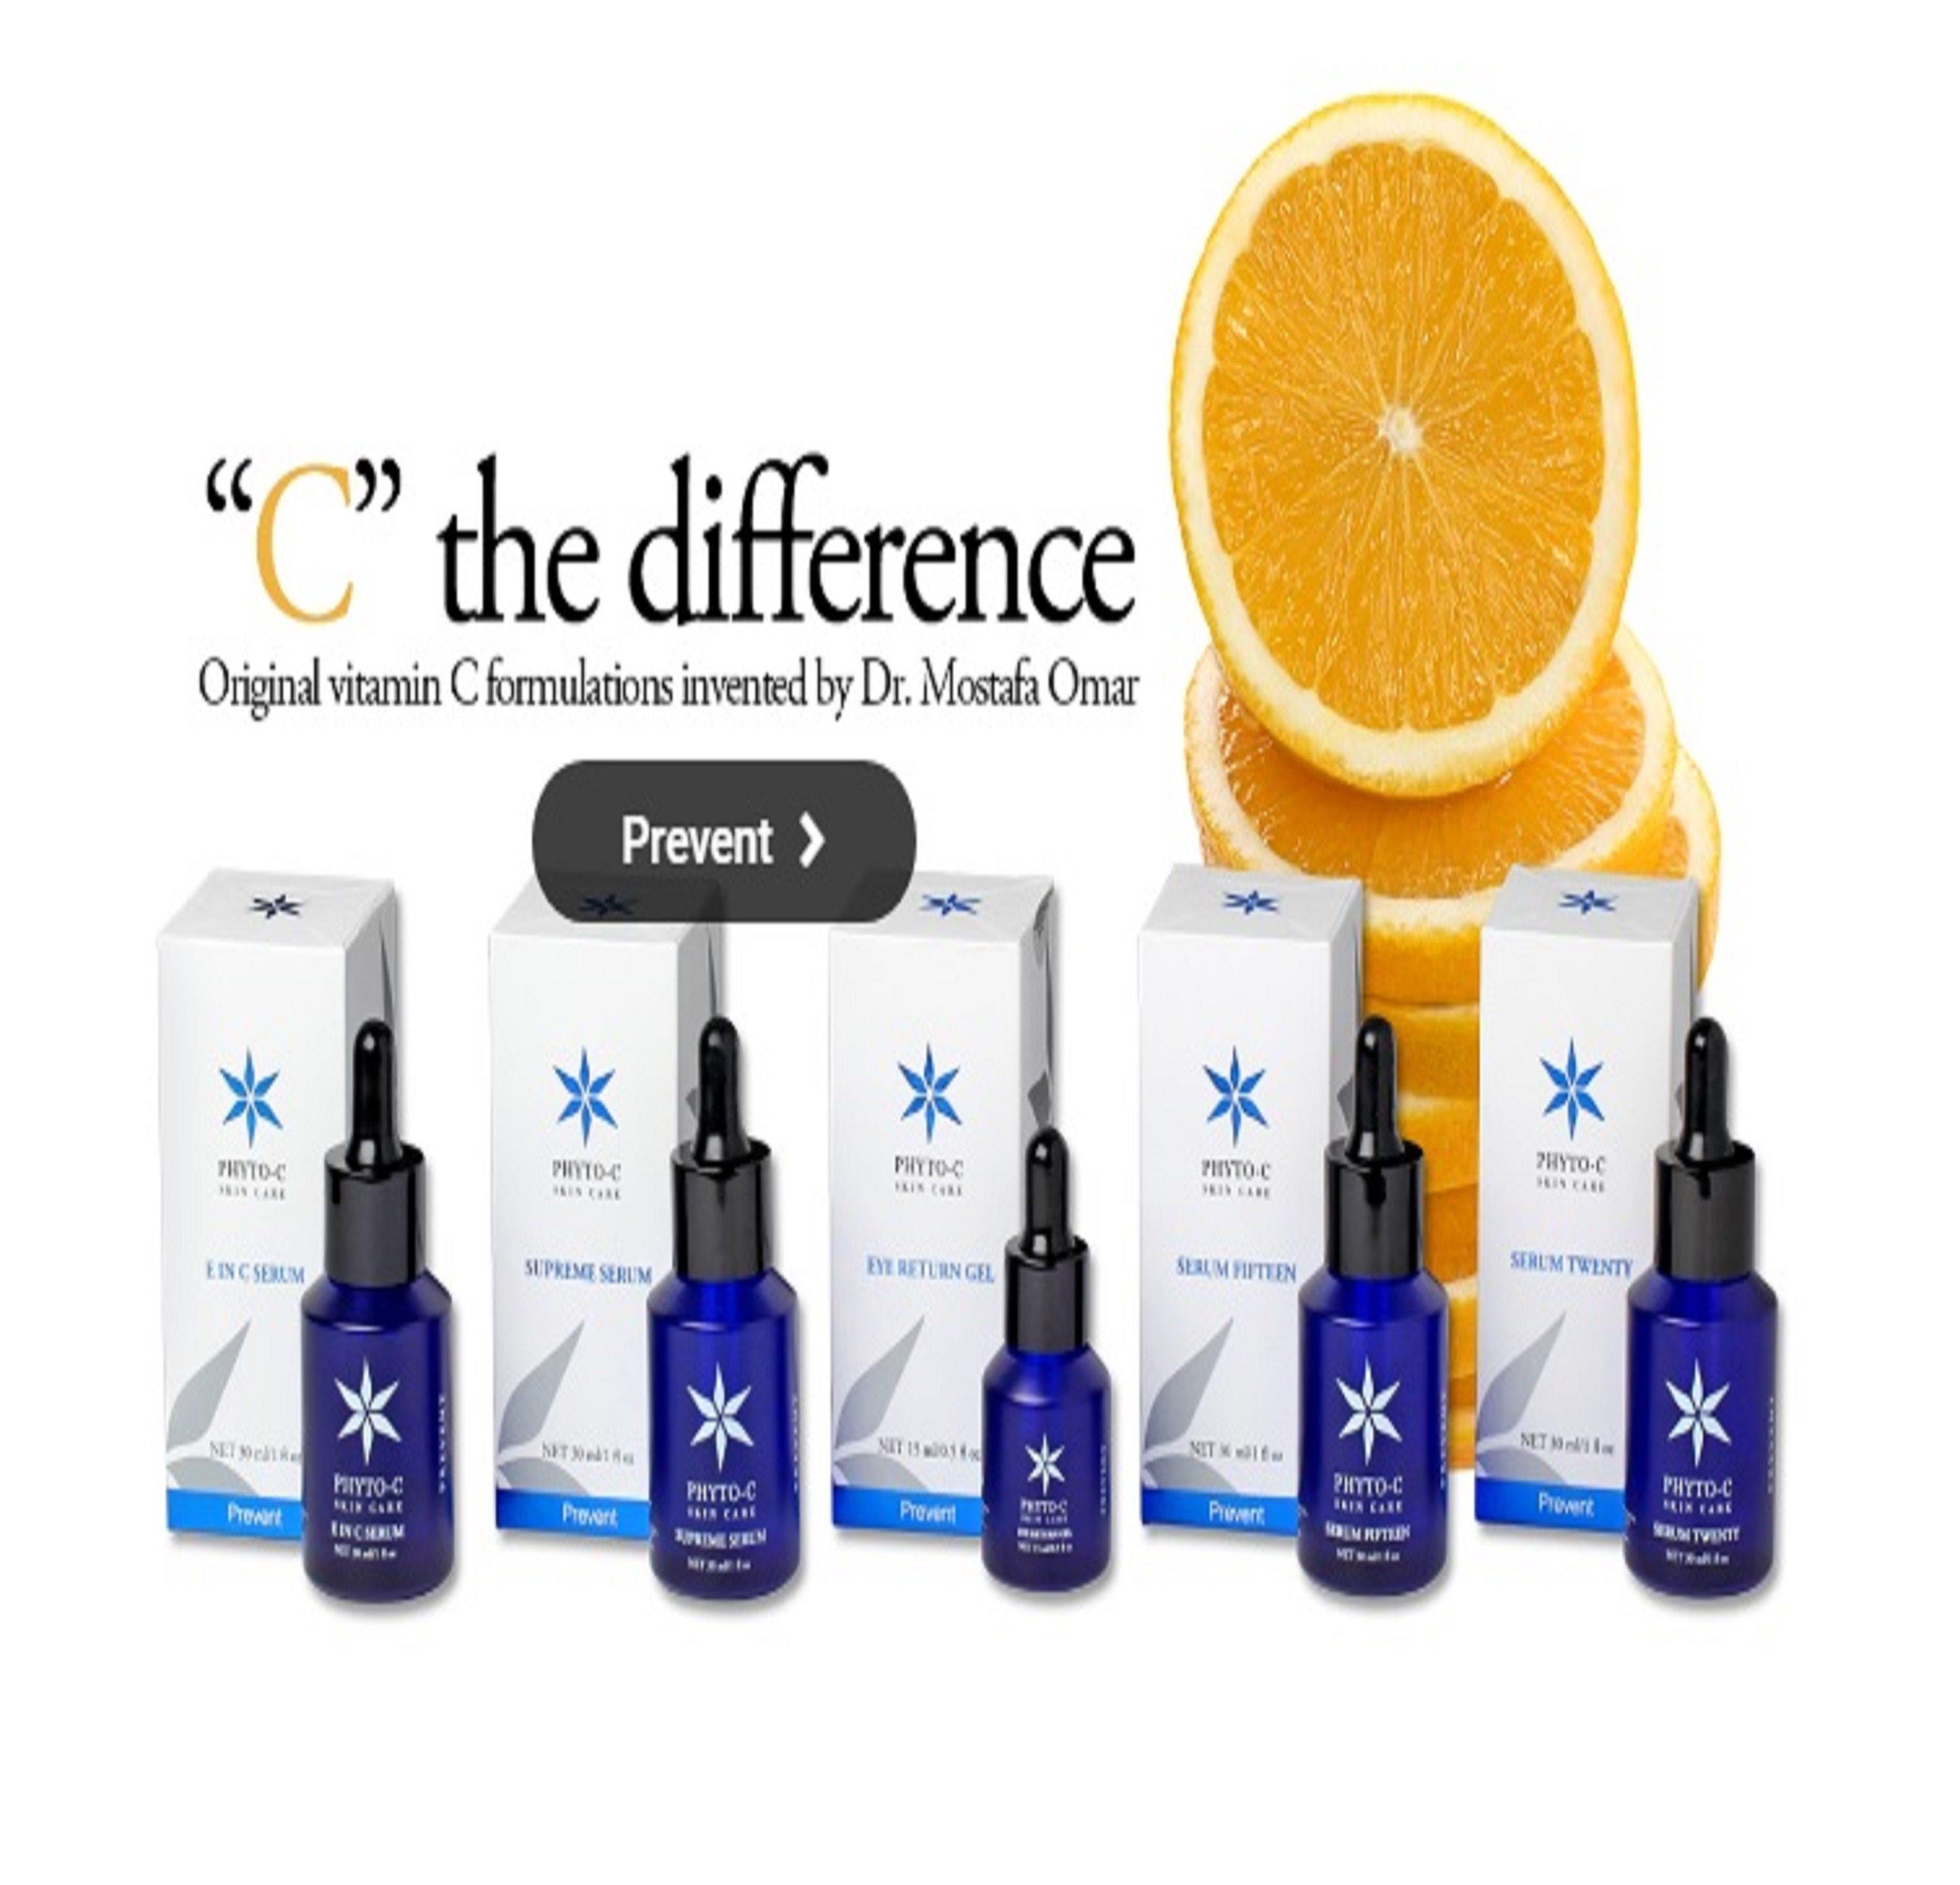 Phyto-C Skin Care (Phytoceuticals Skin Care)